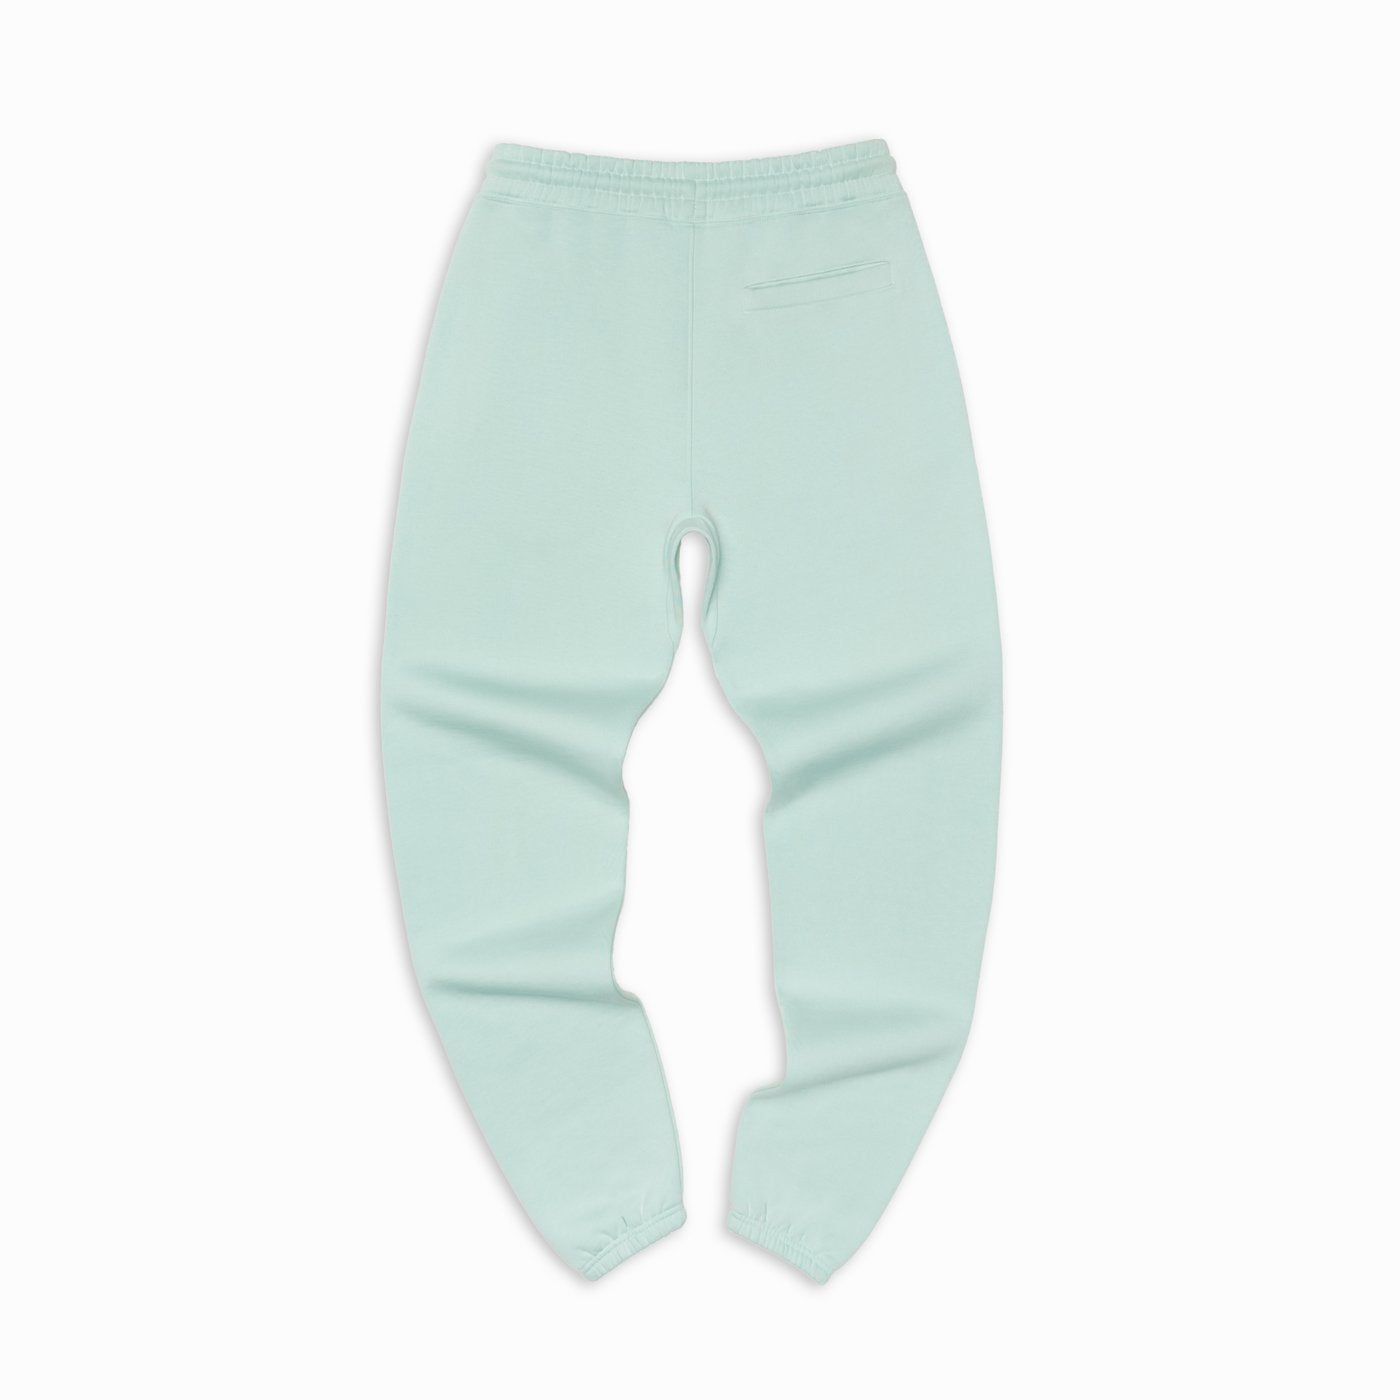 Seafoam Organic Cotton Sweatpants